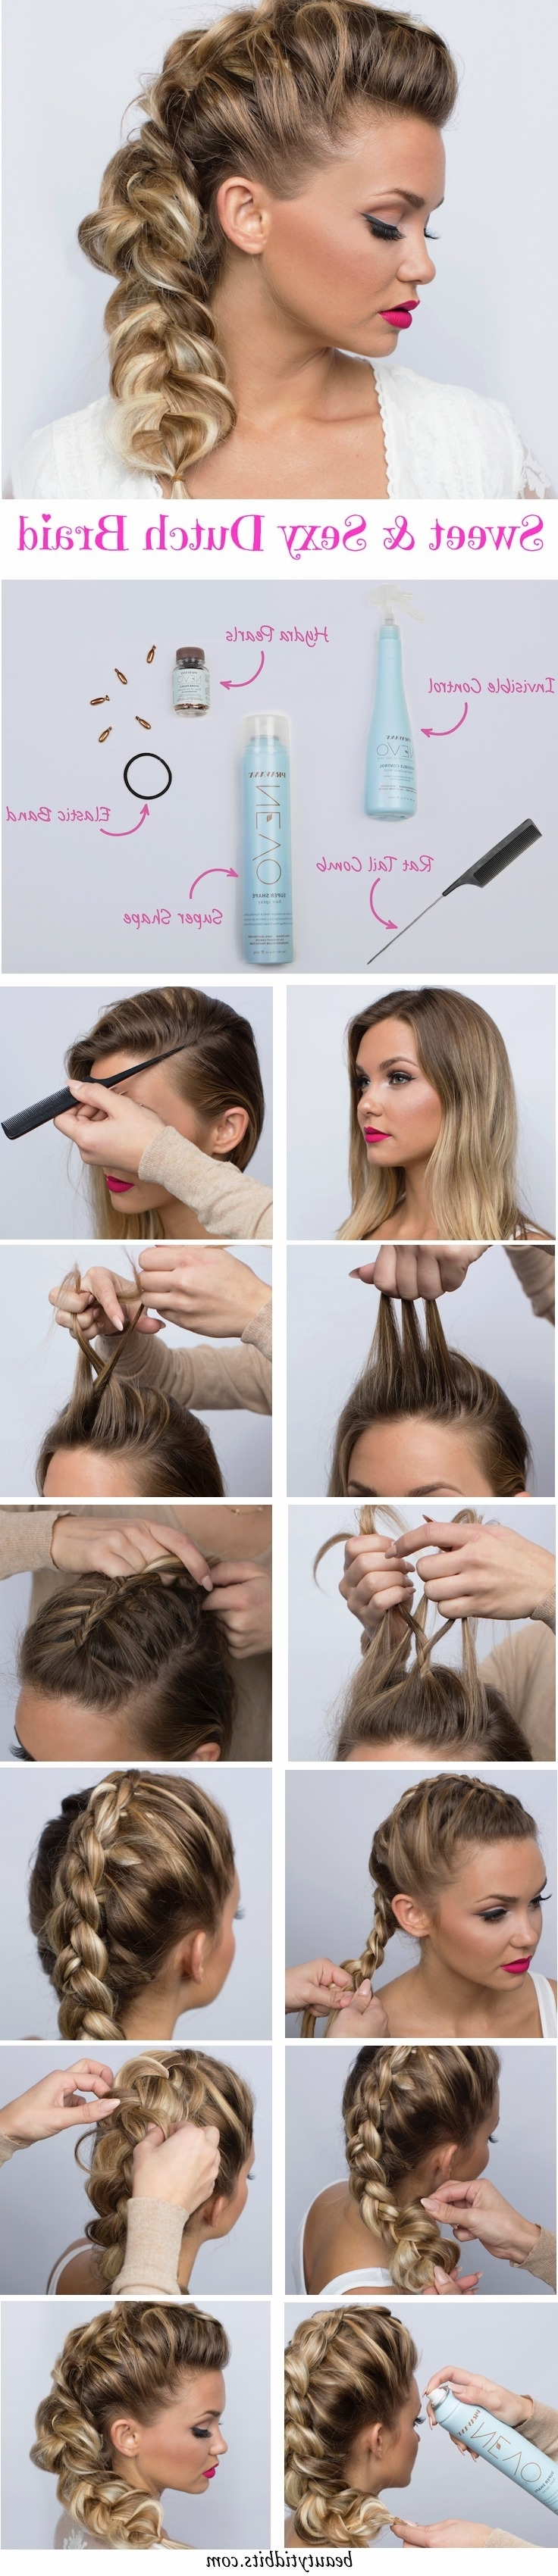 Newest Fauxhawk Ponytail Hairstyles With Regard To 28 Trendy Faux Hawk Hairstyles For Women 2018 – Pretty Designs (View 12 of 20)